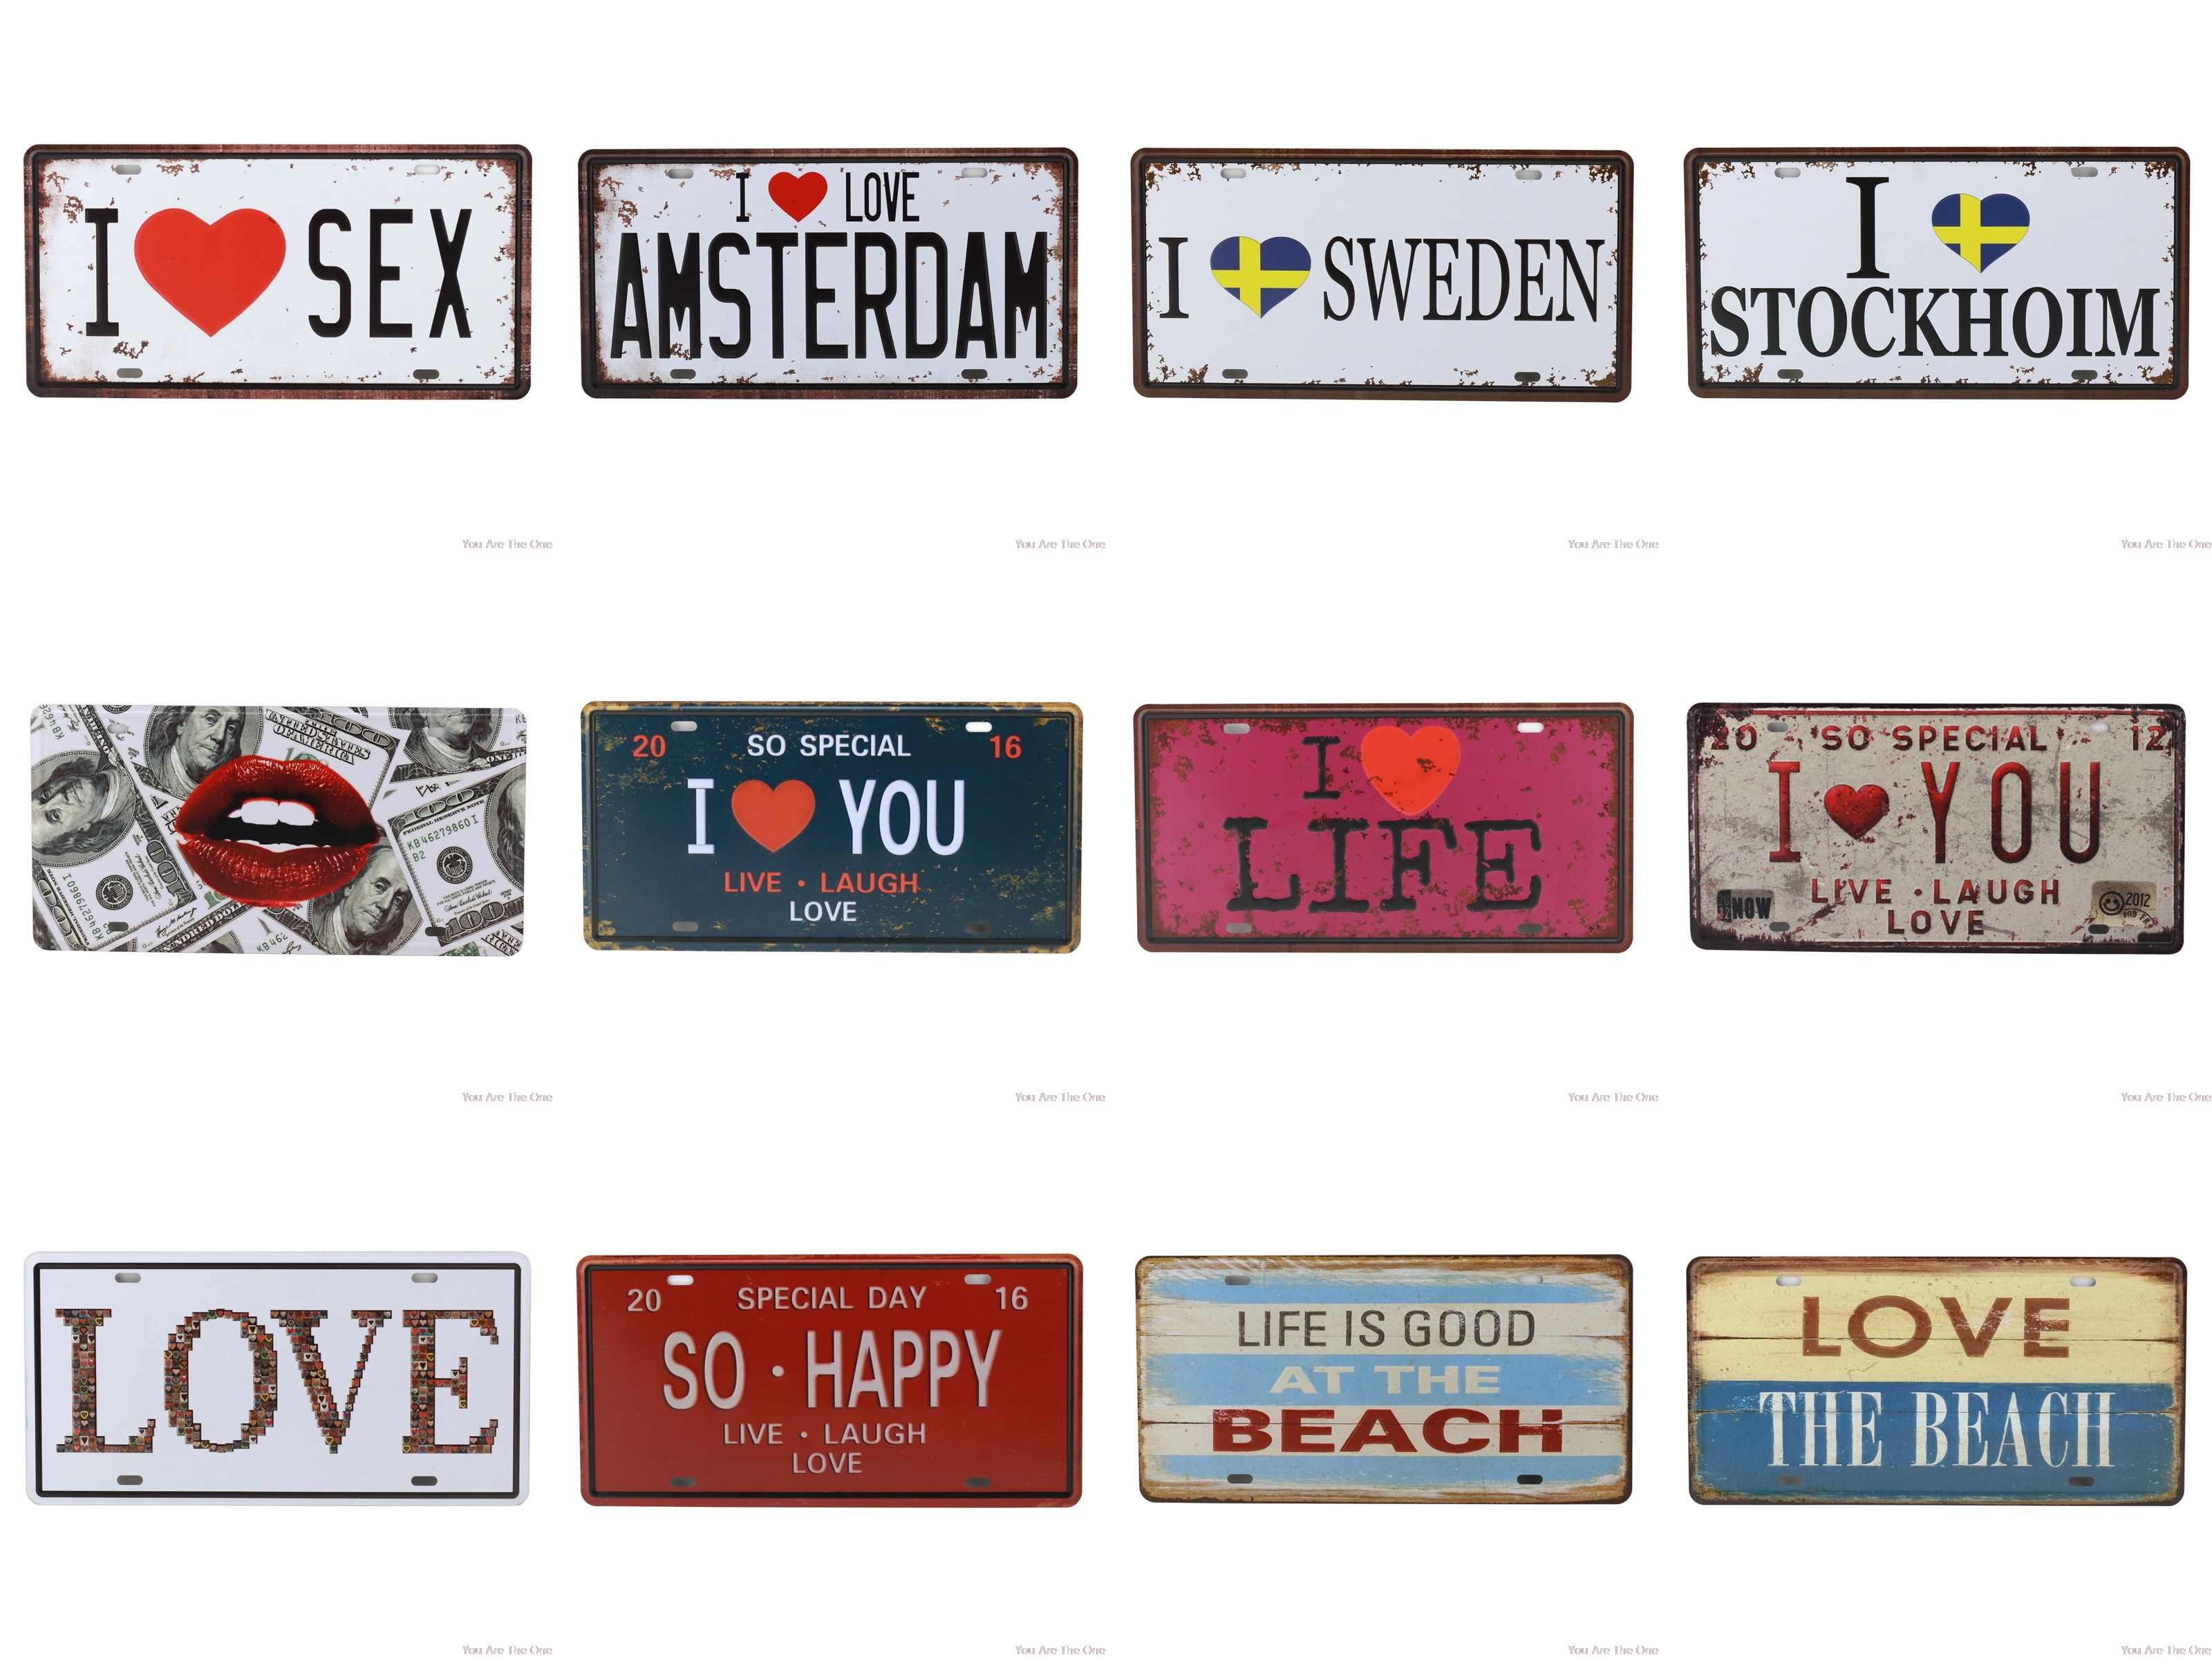 I Love You Shabby Metal Tin Signs Amsterdam Live Laugh Life So Happy Plaque Iron Painting Wall Decor Board Retro Pub Funny Aliexpress,What A Beautiful Name Chords Pdf E